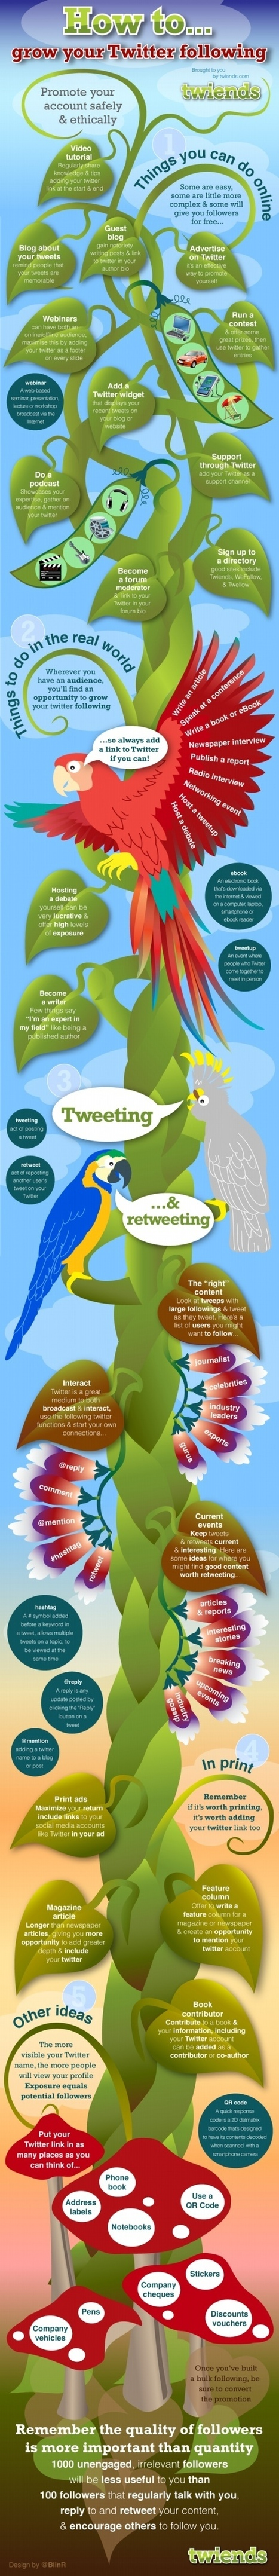 How to Grow Your Twitter Following [Infographic]   Business 2 Community   Digital-News on Scoop.it today   Scoop.it